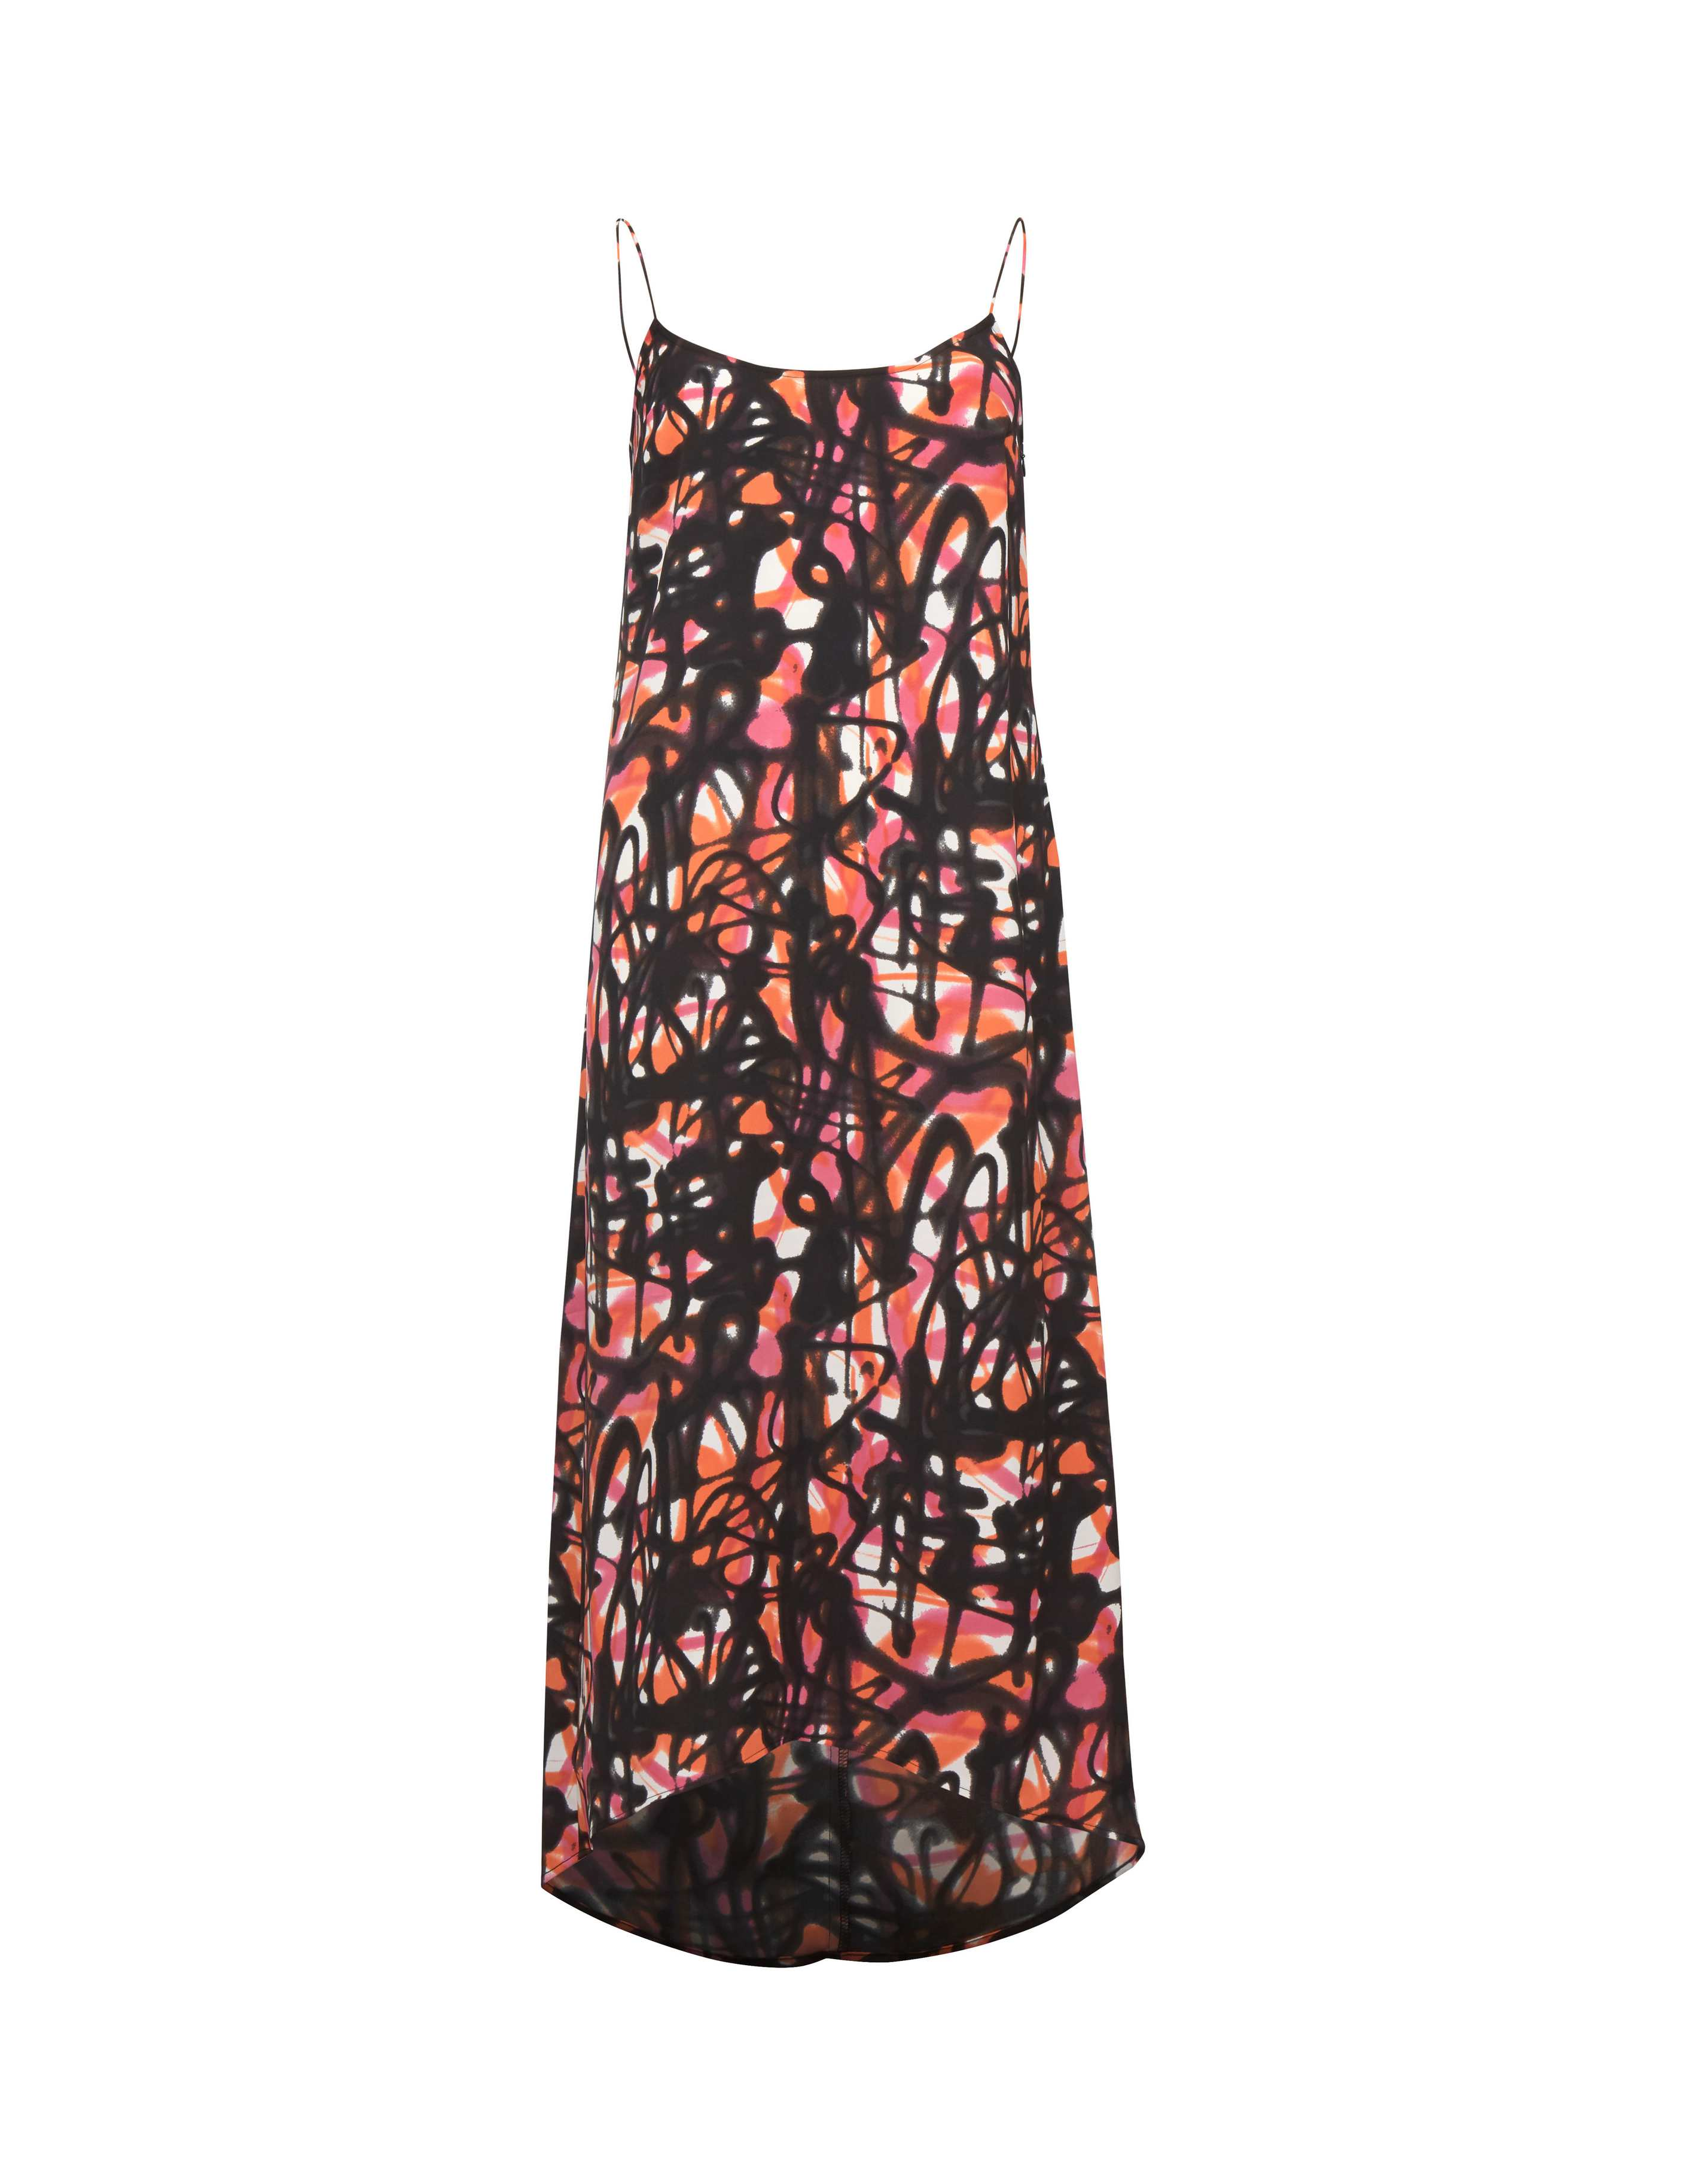 marvalessp dress pattem w64446006 Tiger of Sweden